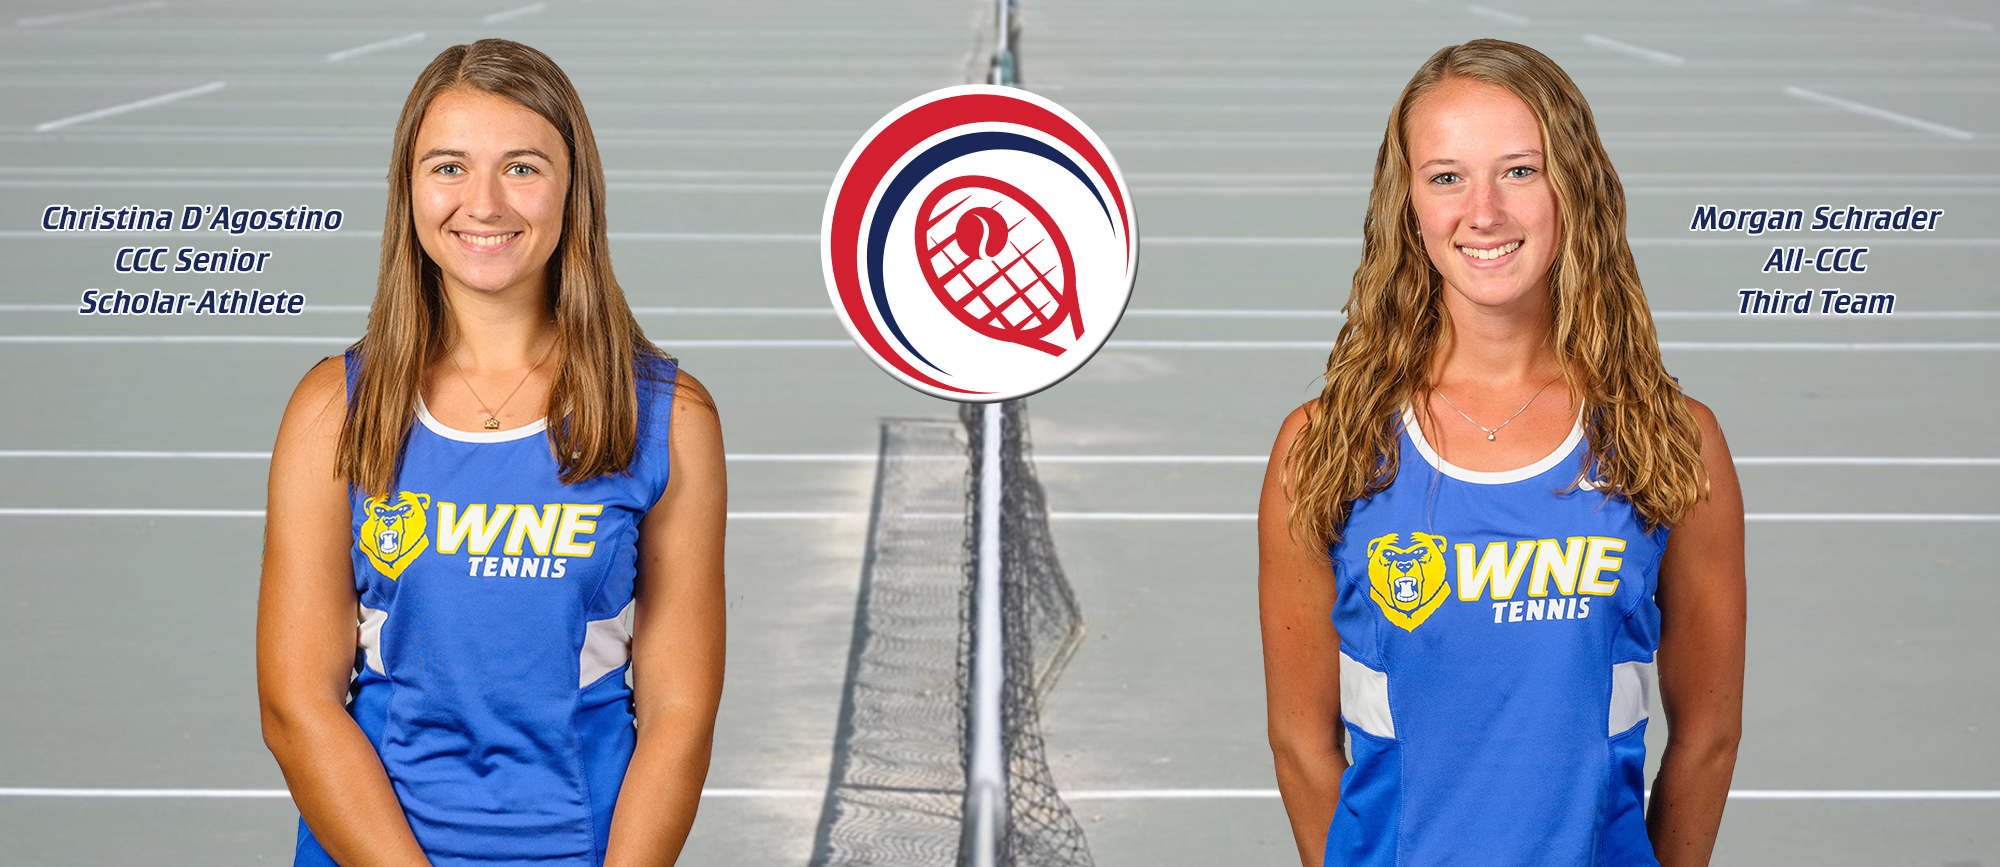 D'Agostino Named CCC Senior Scholar-Athlete, Schrader Earns All-CCC Third Team Honors